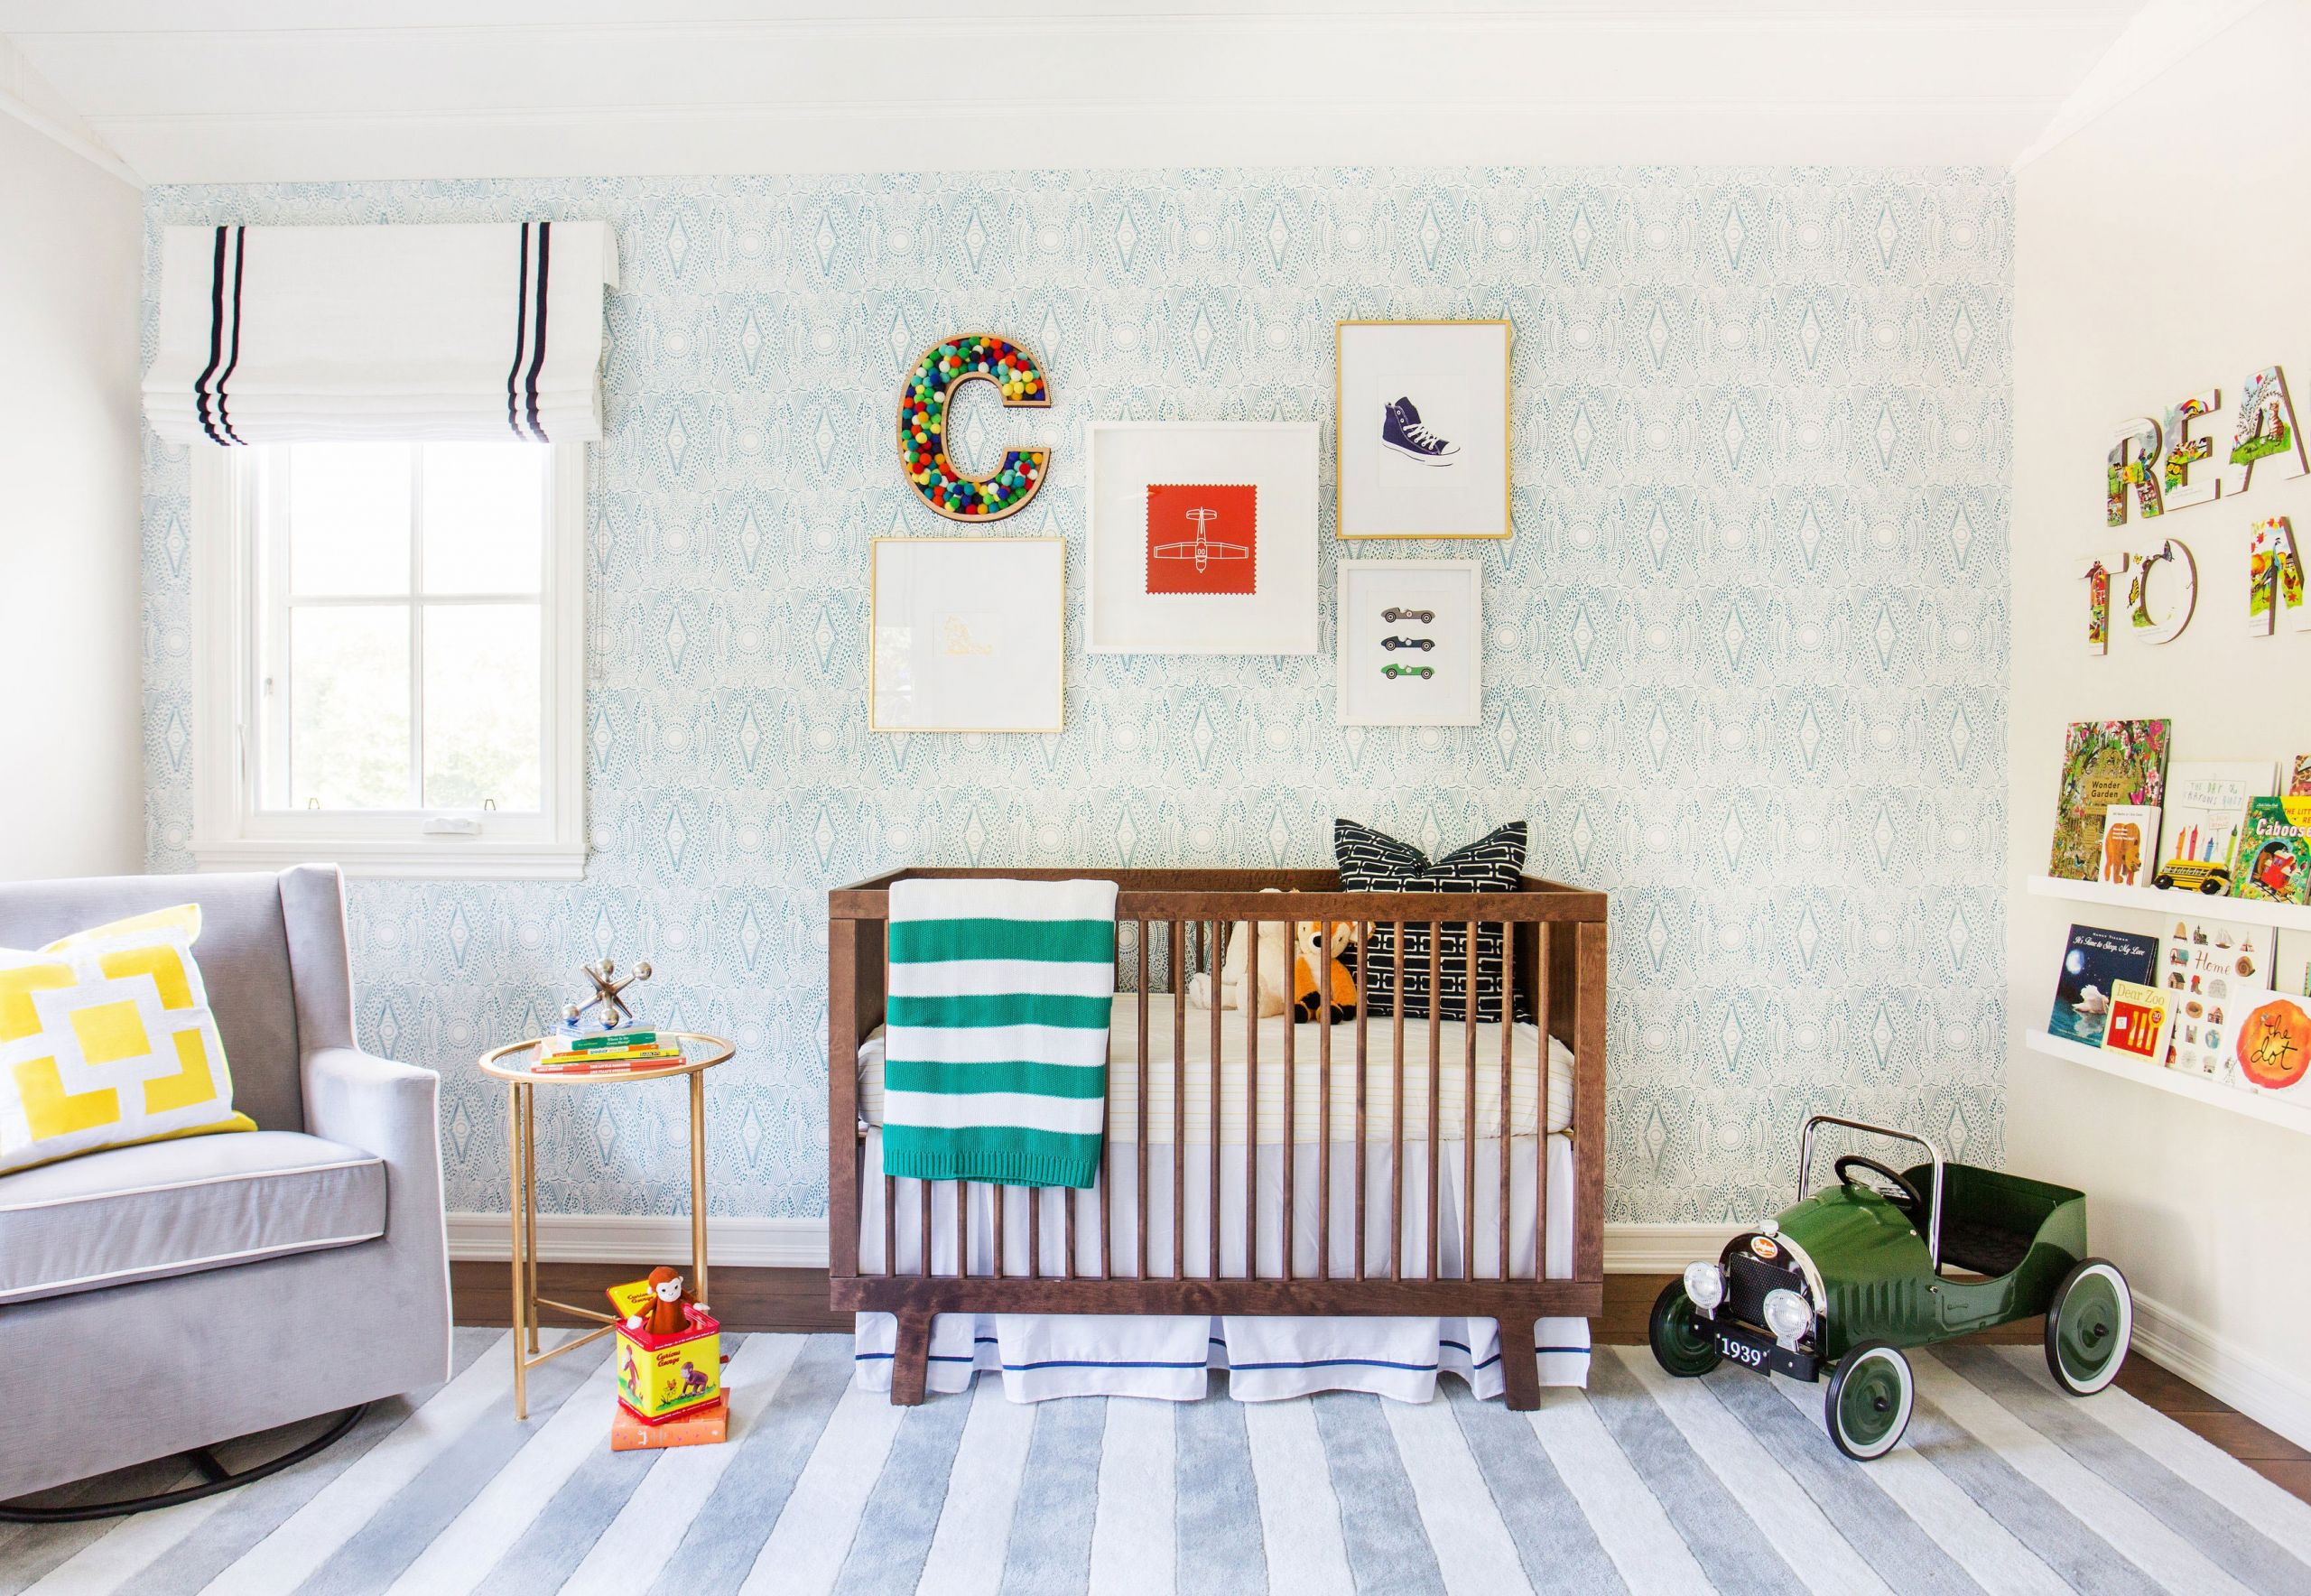 Kids Room Decor Ideas  3 Wall Decor Ideas Perfect for Kids' Rooms s